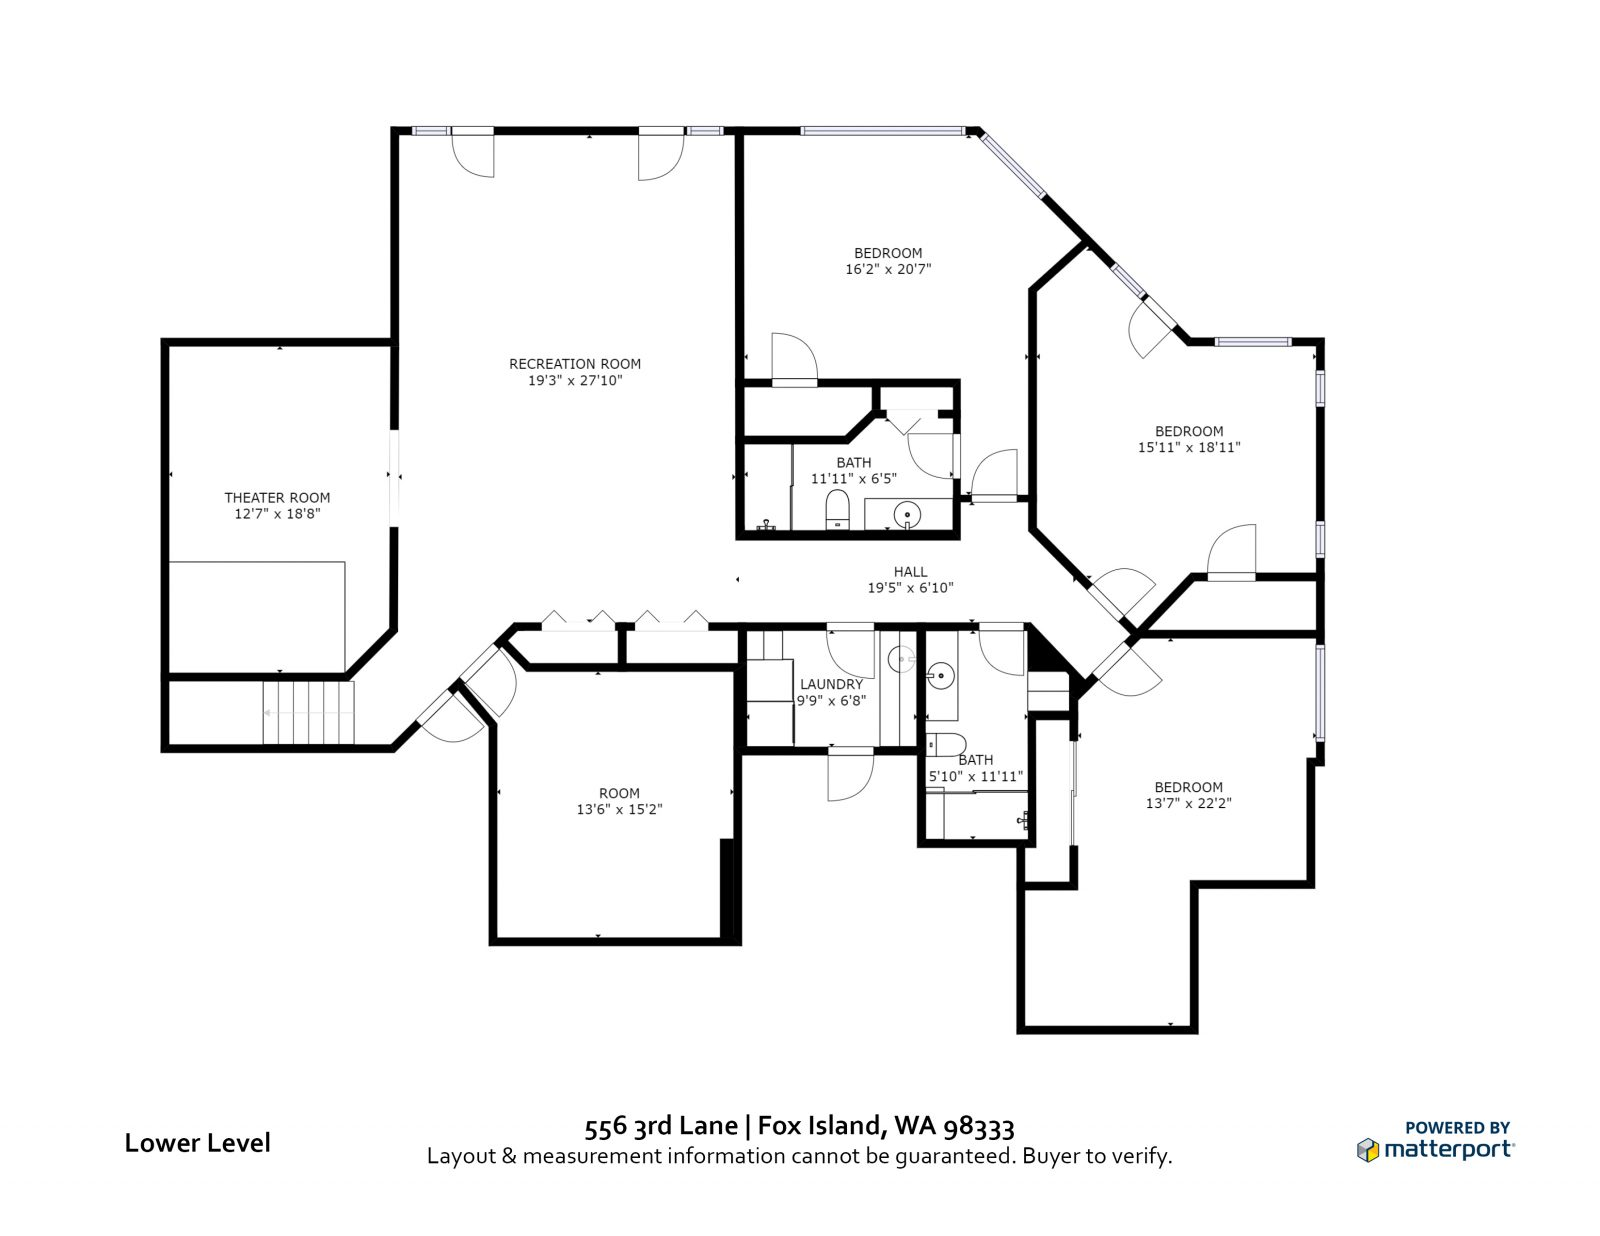 LOWER LEVEL: 556 3rd Lane, Fox Island WA 98333